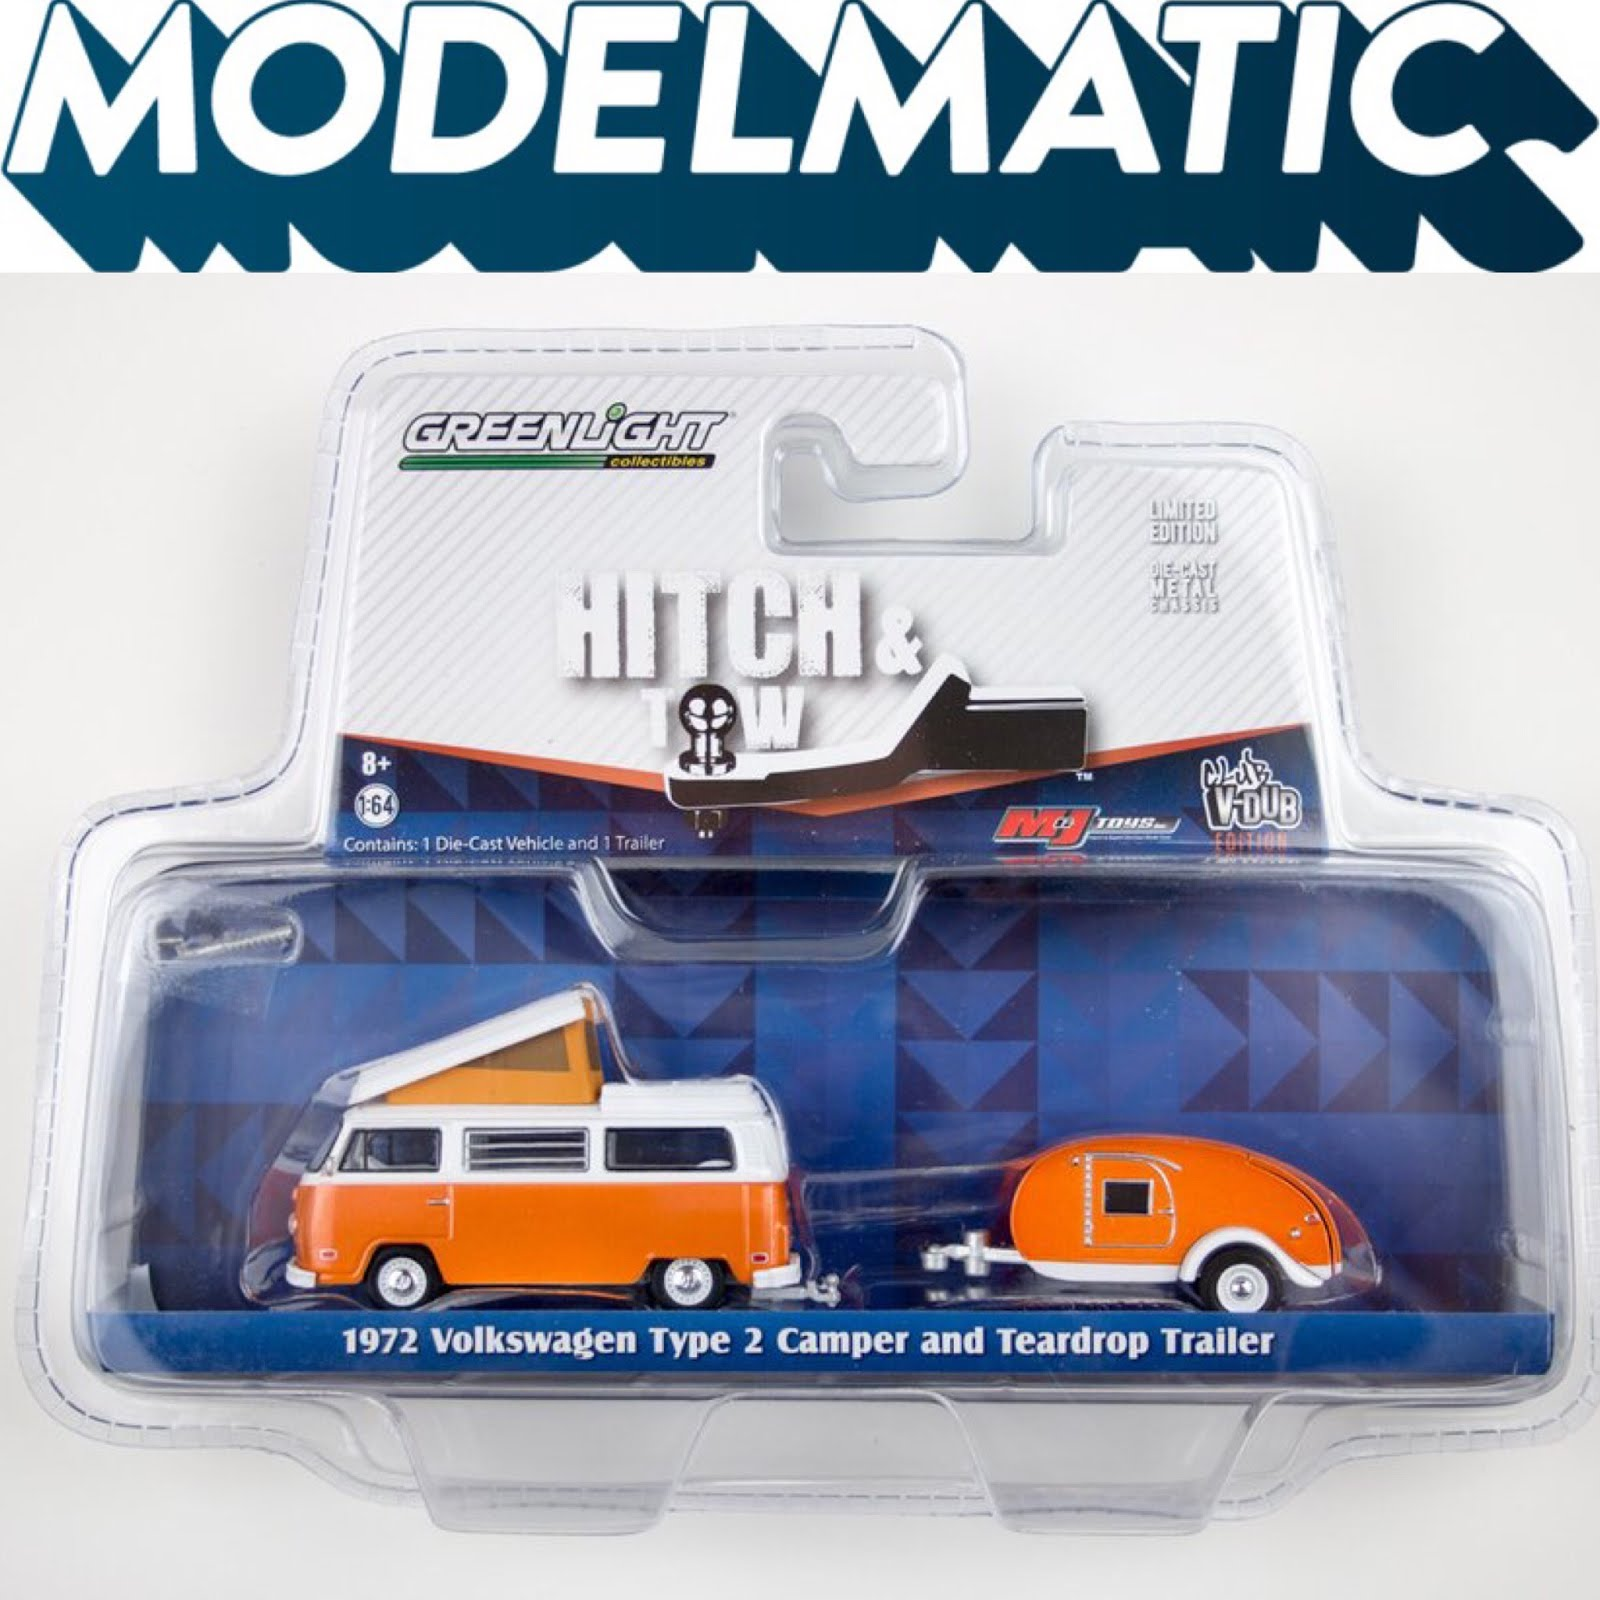 UK Collectors - Greenlight Hitch & Tow Hobby Exclusive